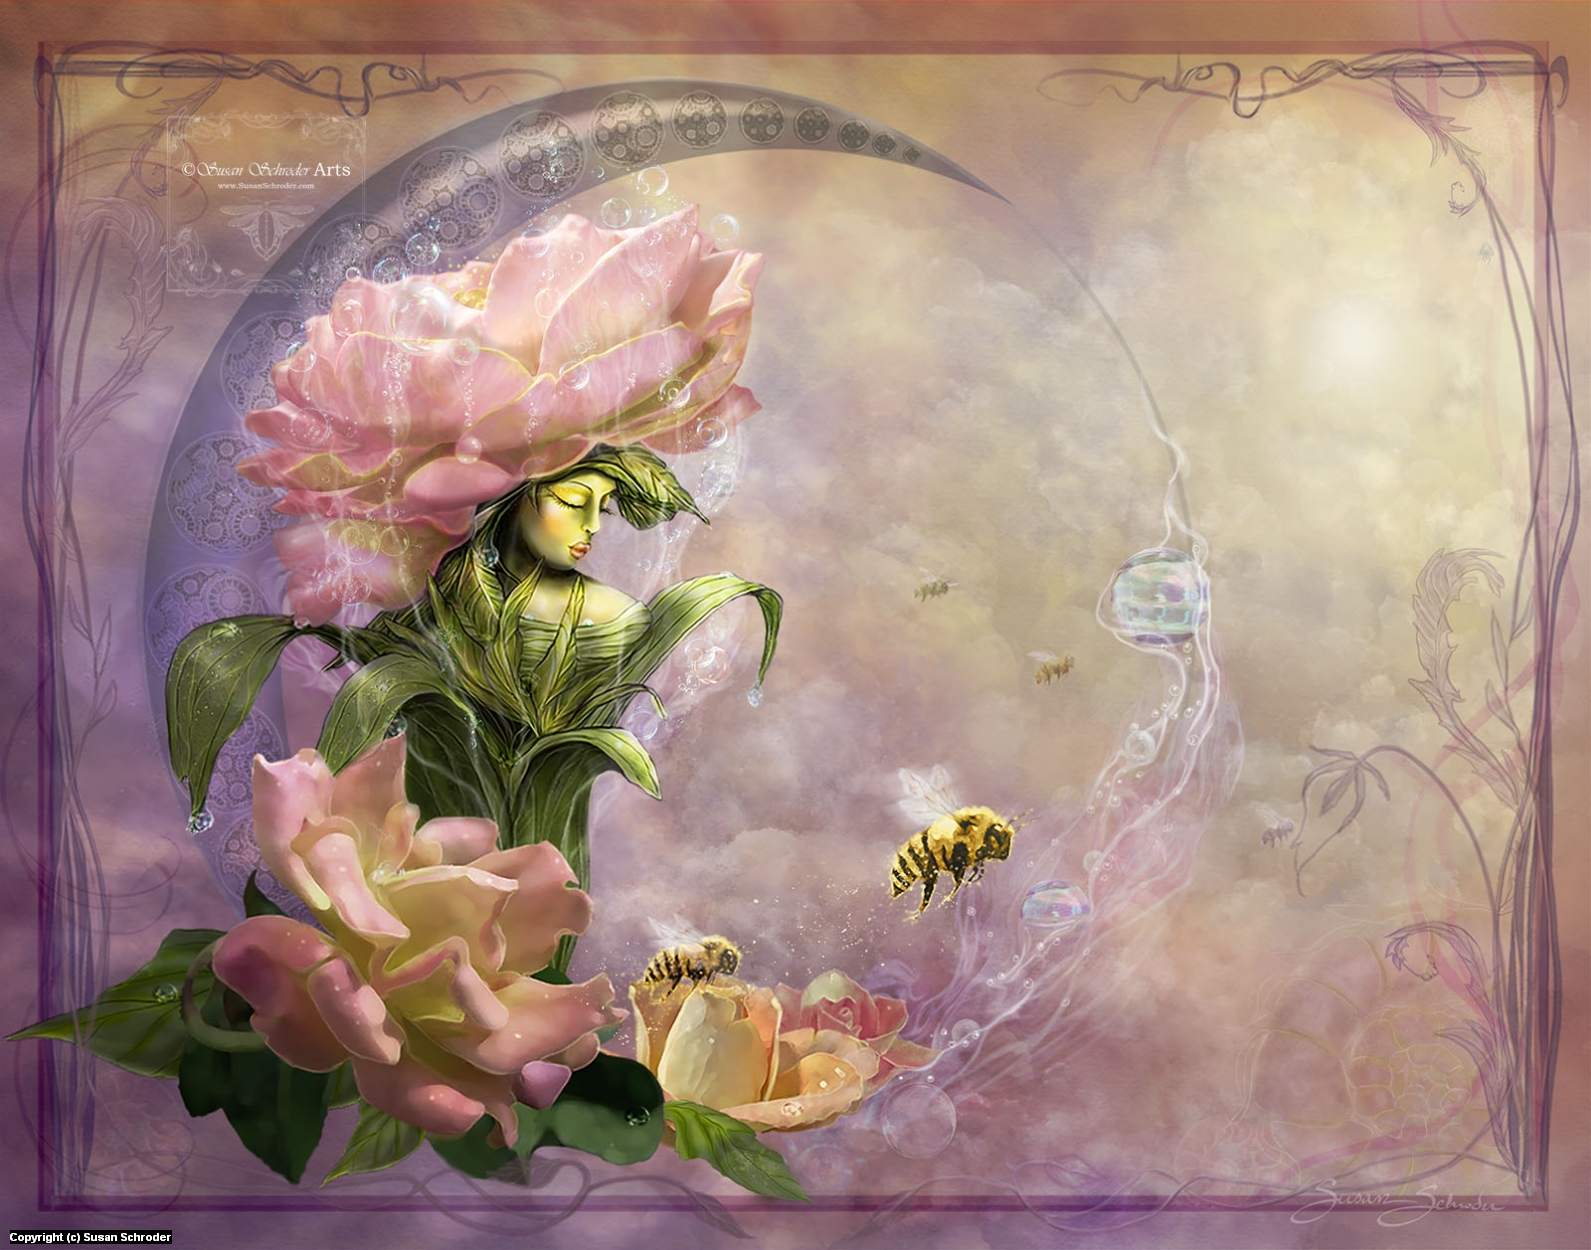 What Dreams a Rose? Artwork by Susan Schroder